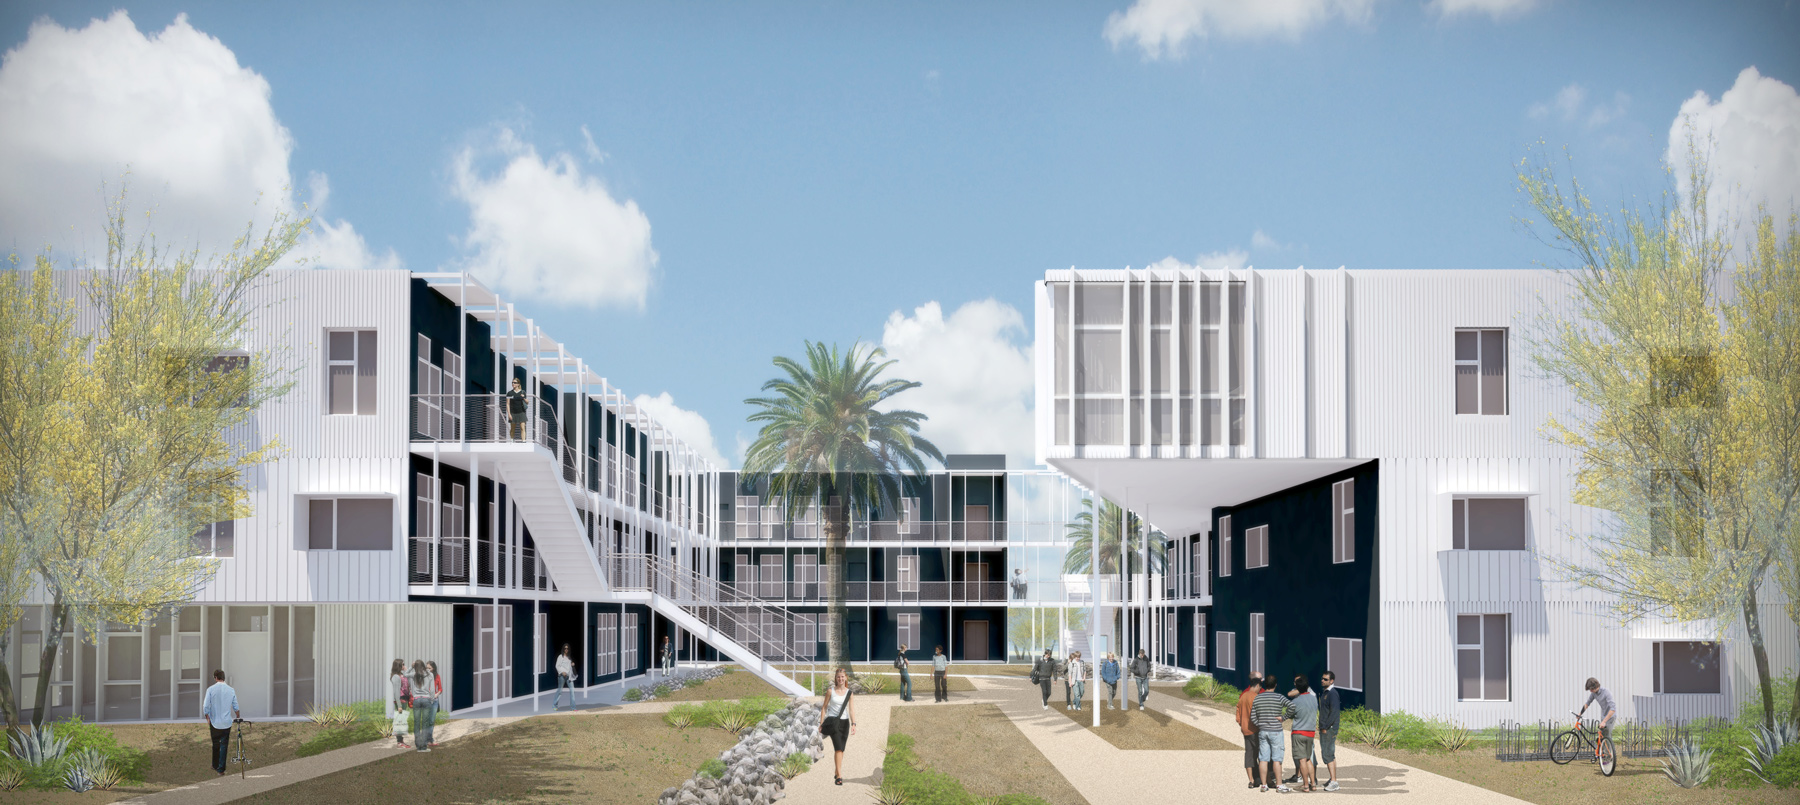 Merveilleux Projective Renderings For Lorcan Ou0027Herlihy Architectsu0027 San Joaquin Housing  Complex At University Of